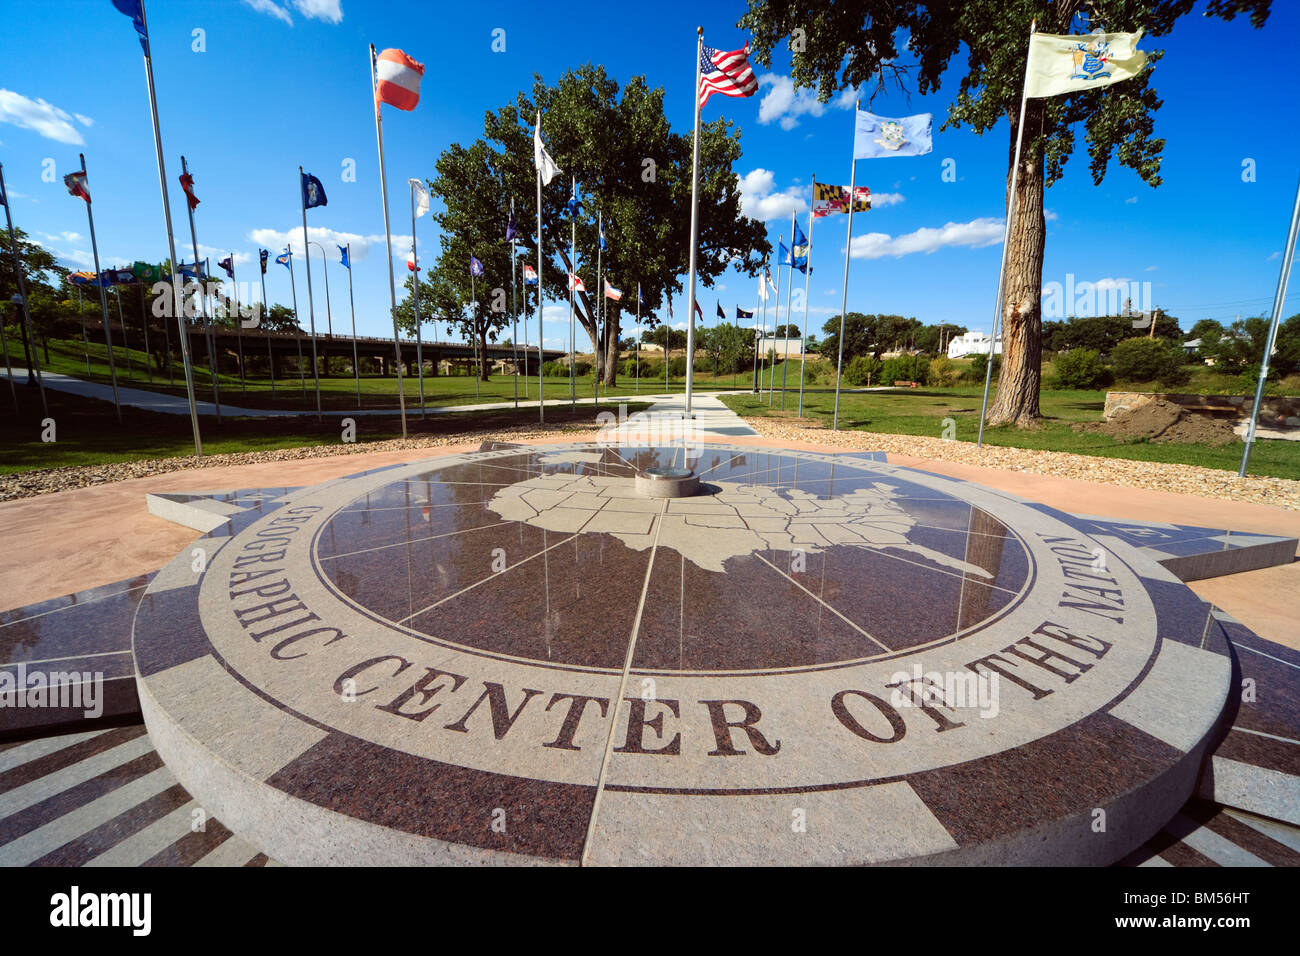 Belle Fourche South Dakota SD geographic geographical center centre of the nation. United States of America U.S.A. - Stock Image